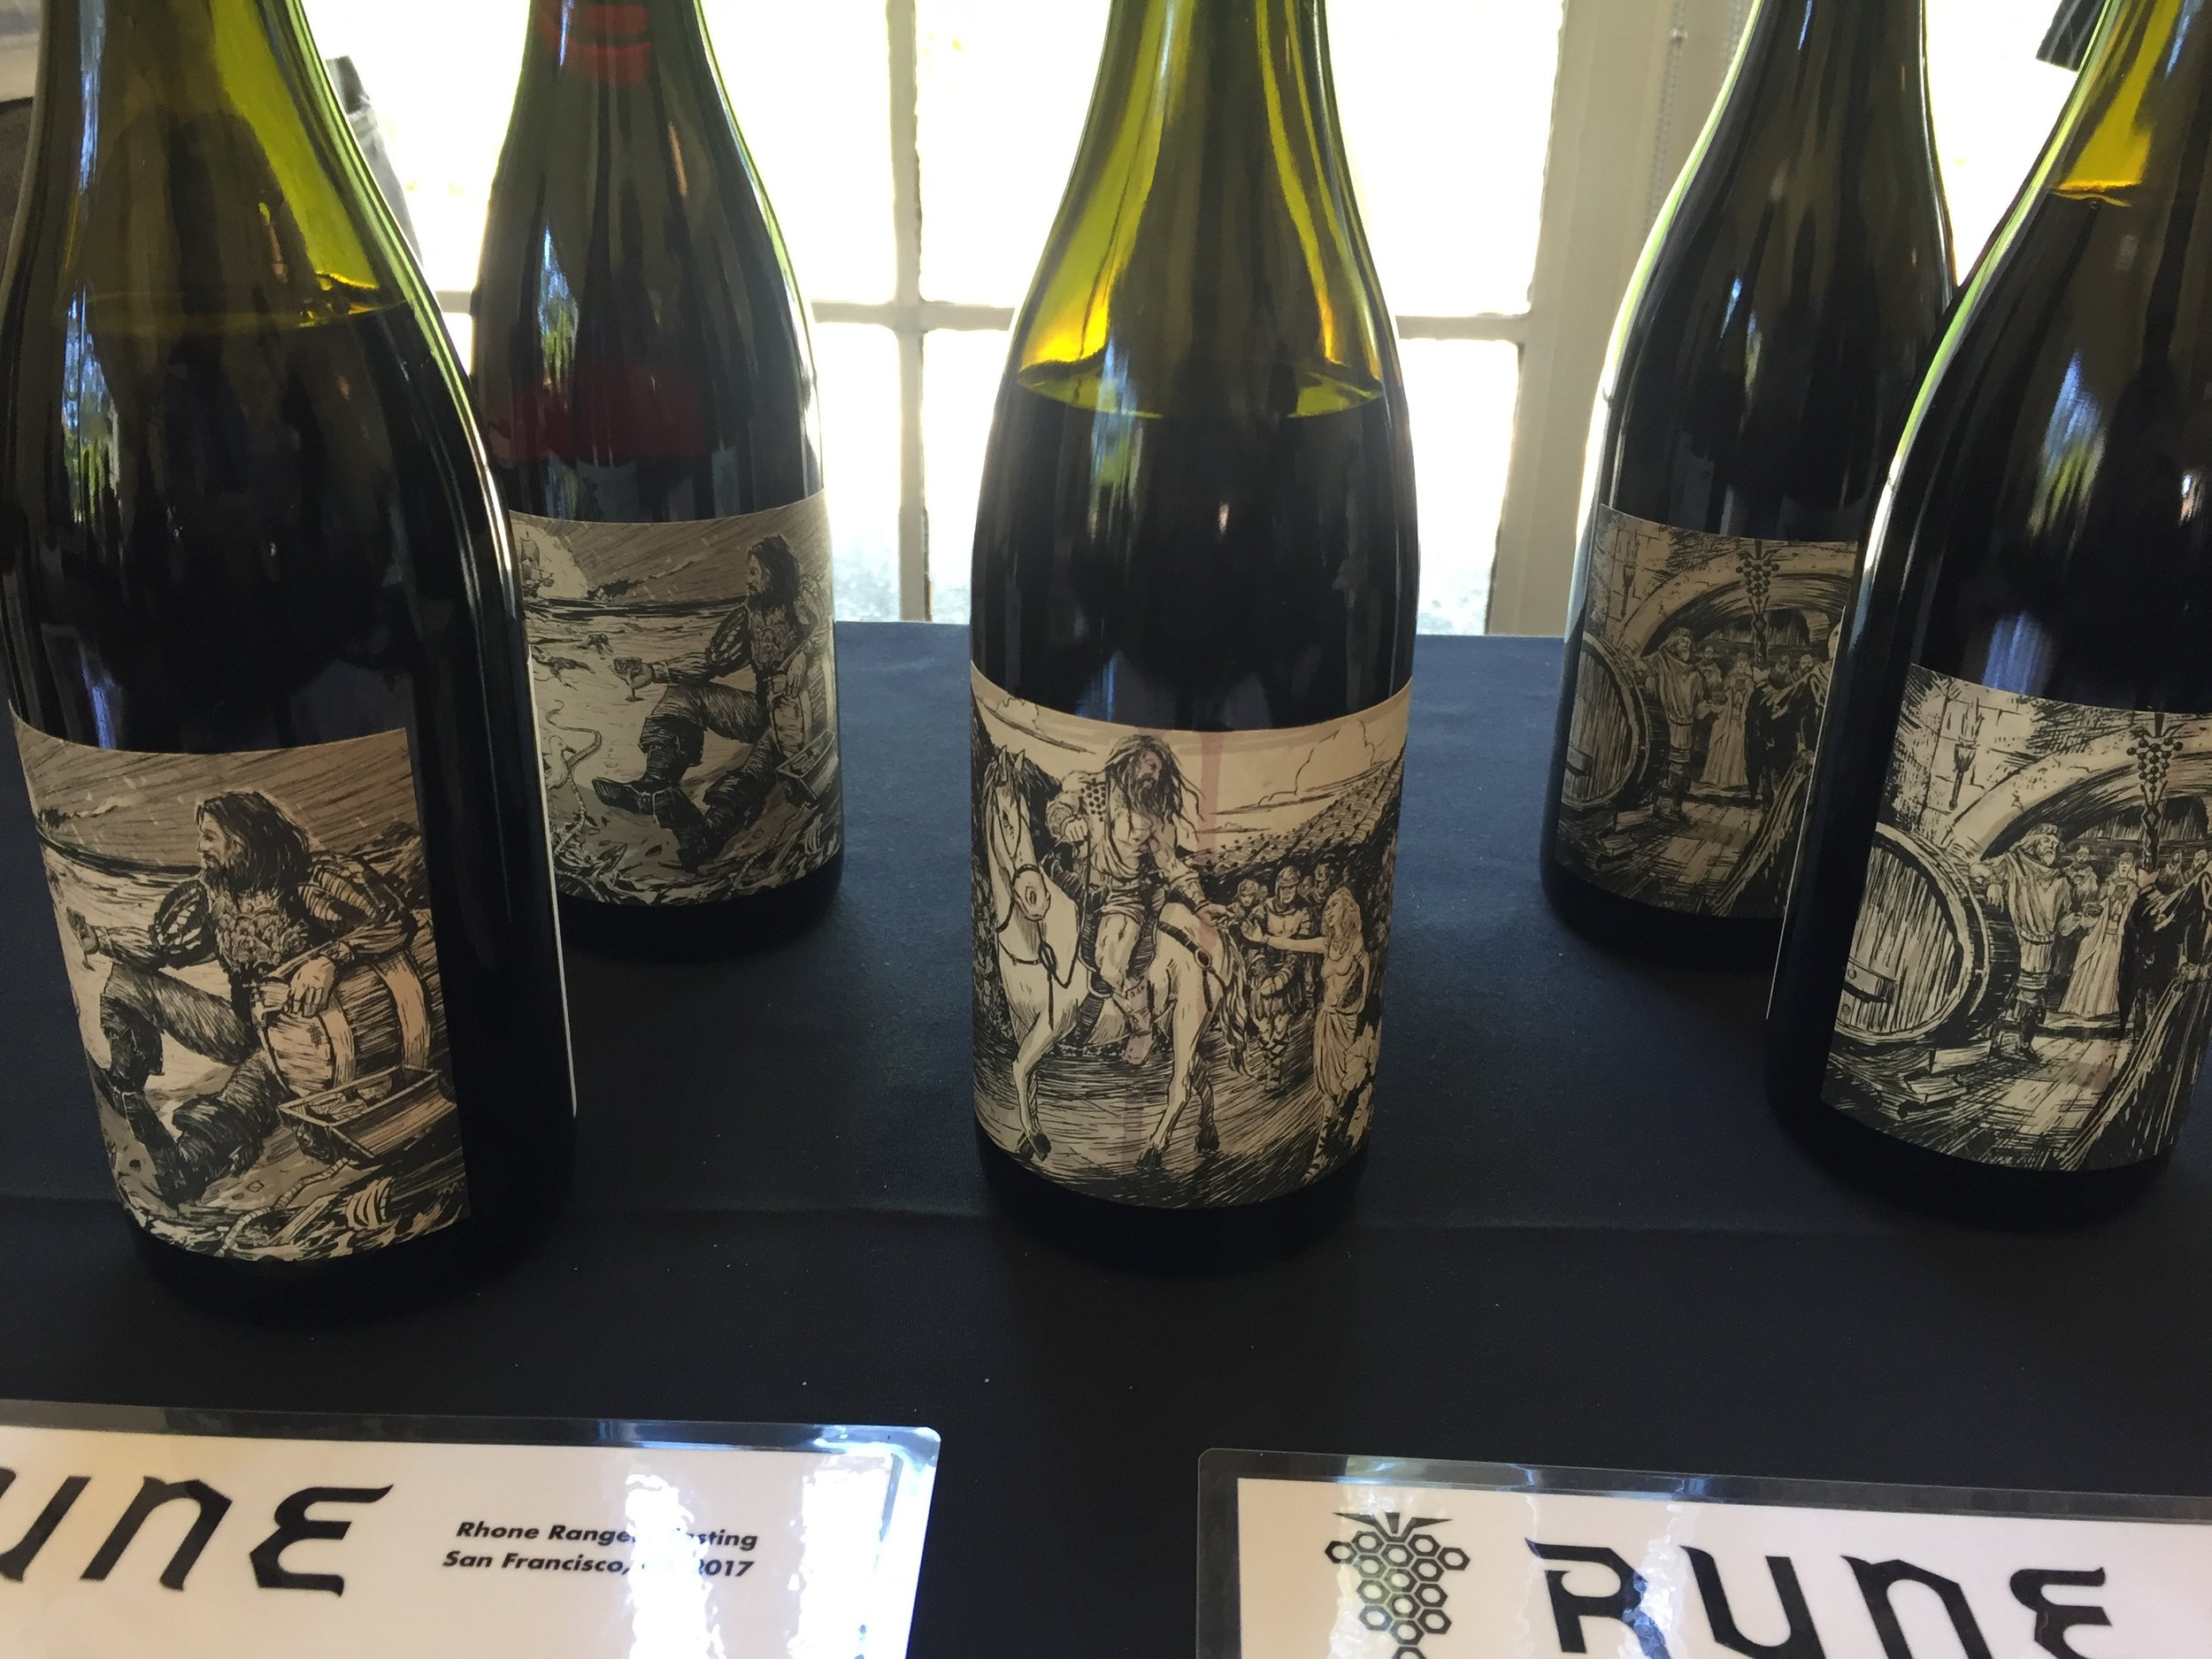 Rune wines from Arizona, with labels by a local graphic artist